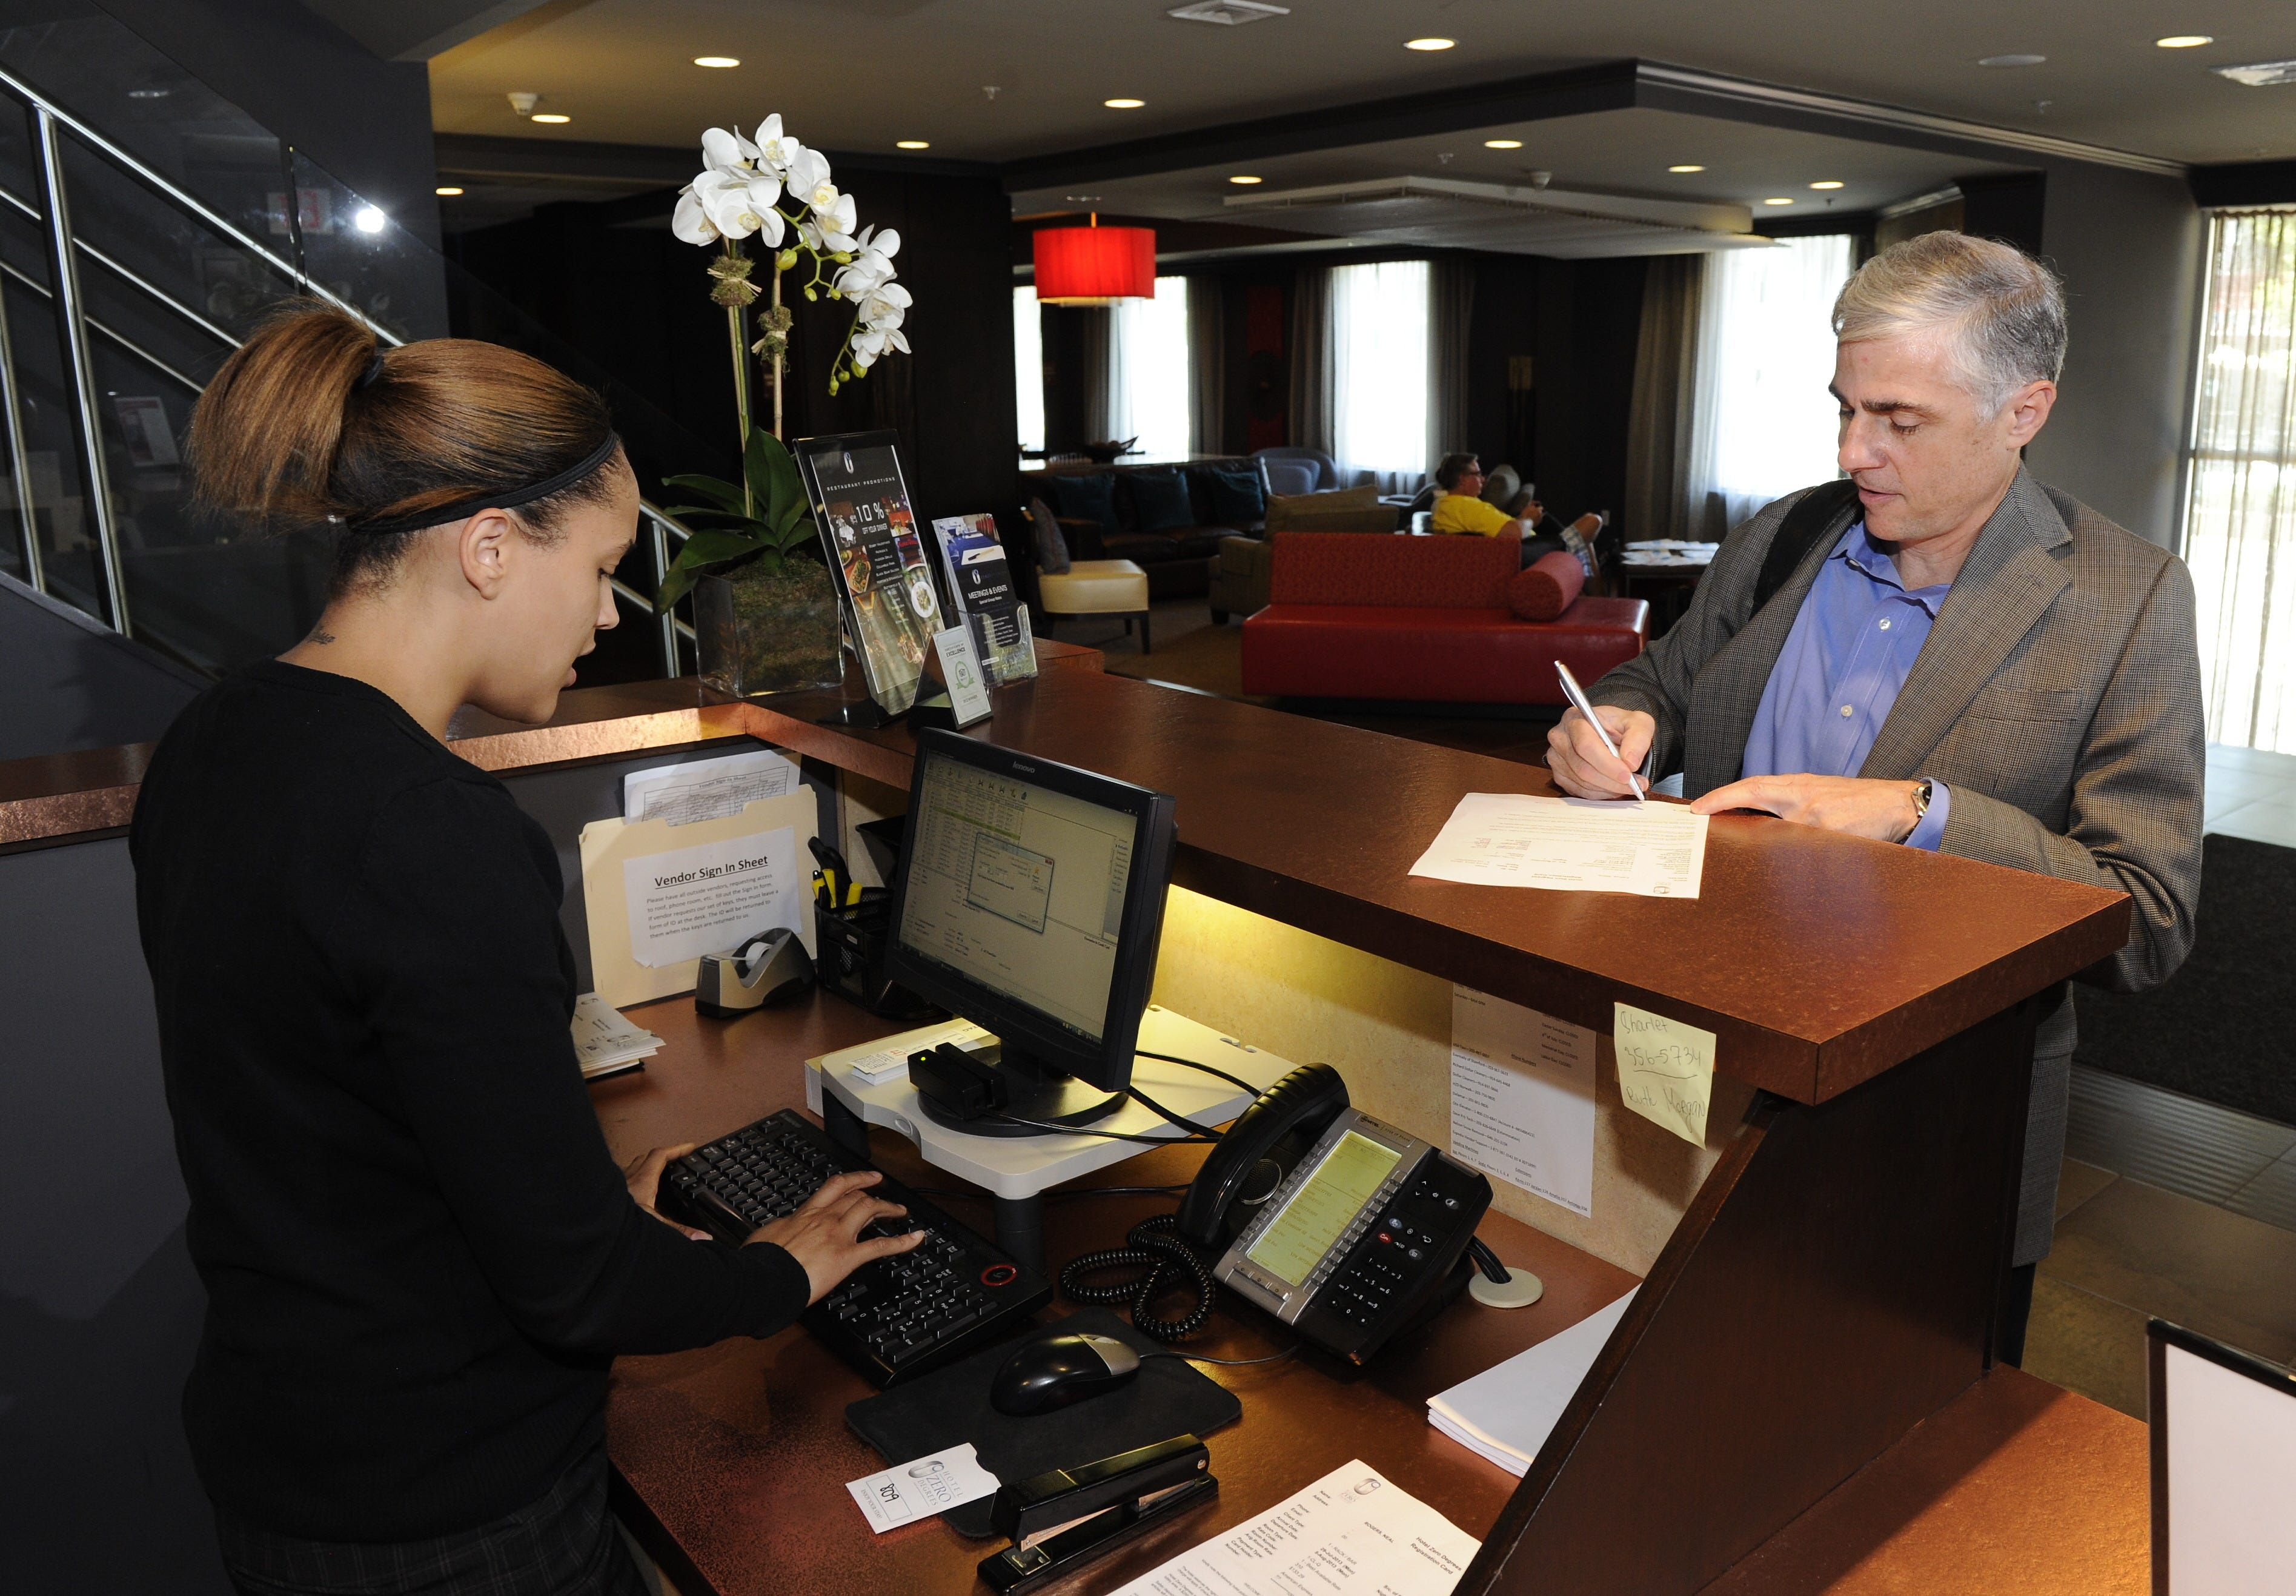 Hotel front desk secrets: 9 ways to improve your stay | USA Today